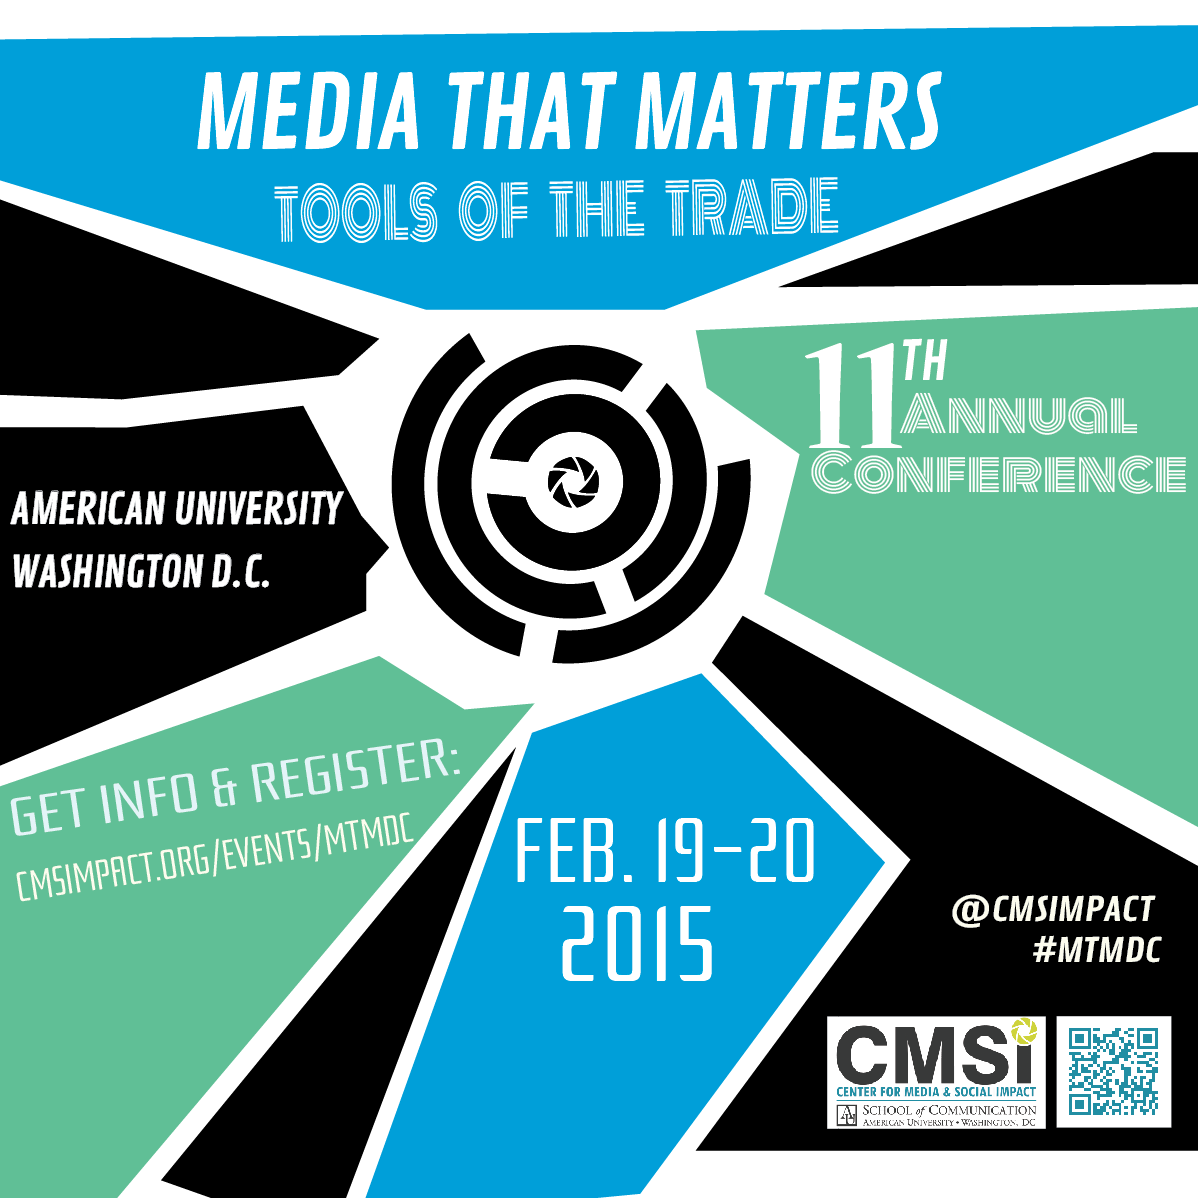 Media That Matters 2015